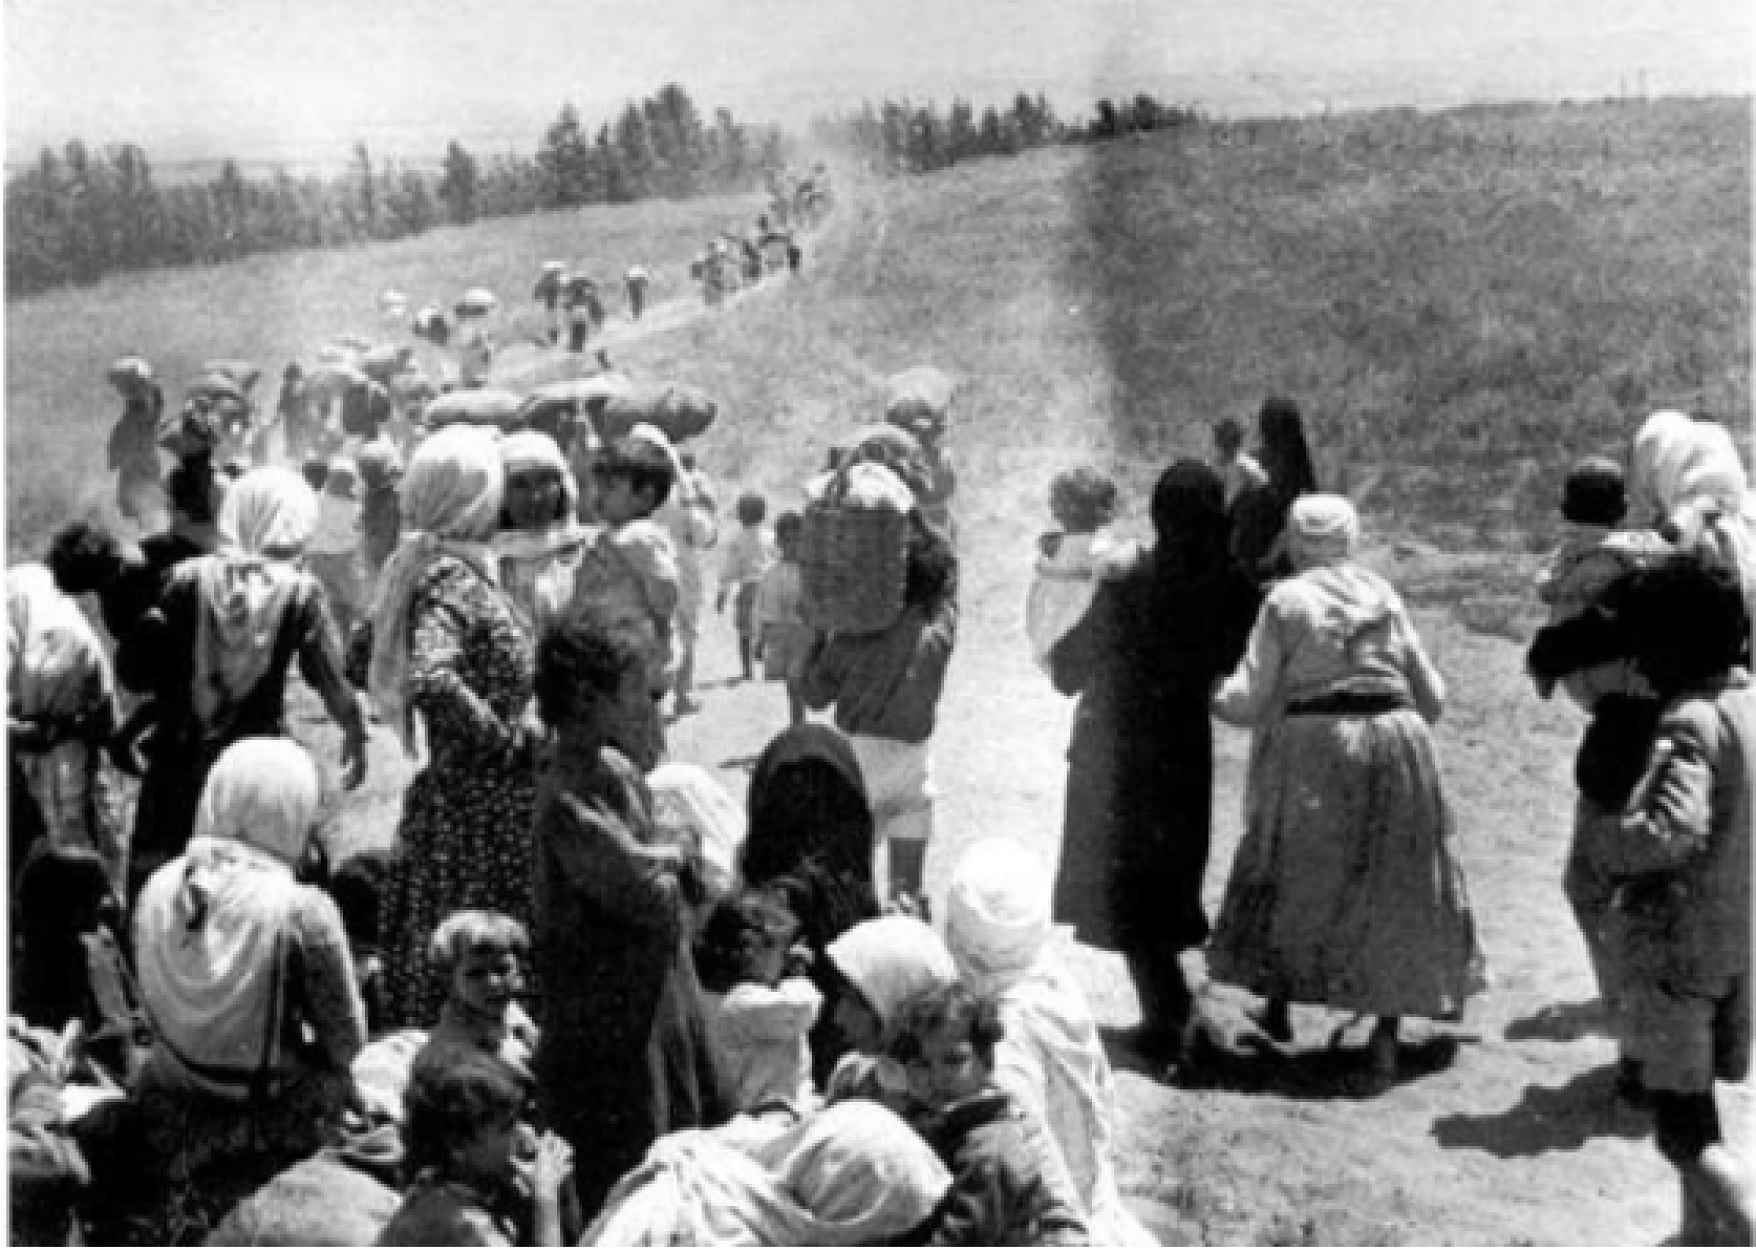 1948 photo of Palestinian refugees